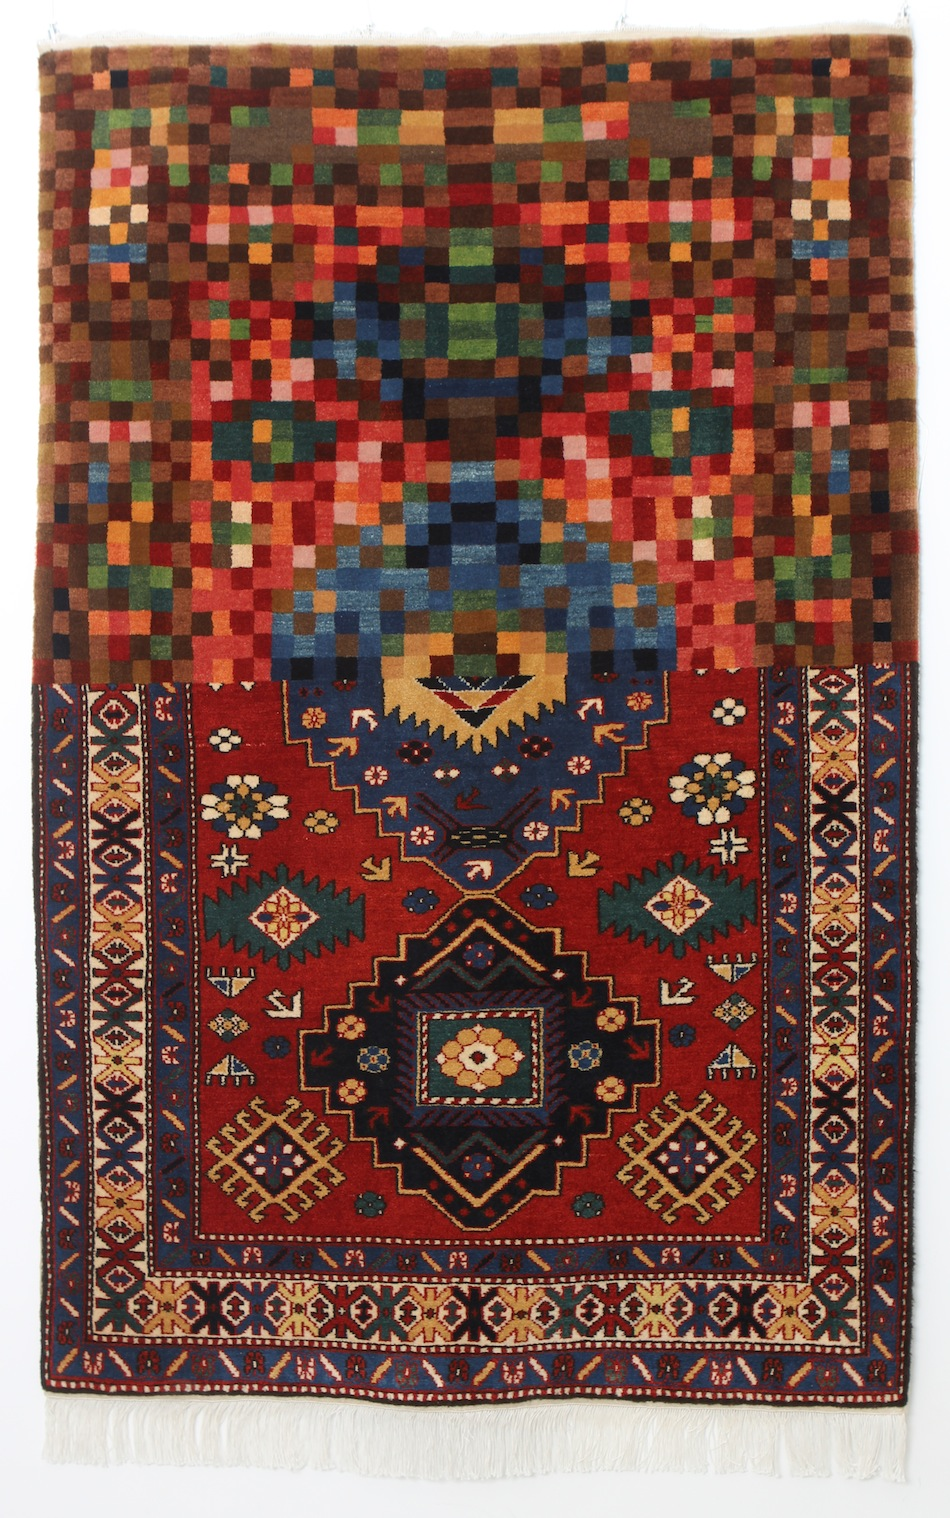 Faig Ahmed textile traditional Azerbaijani rugs 7